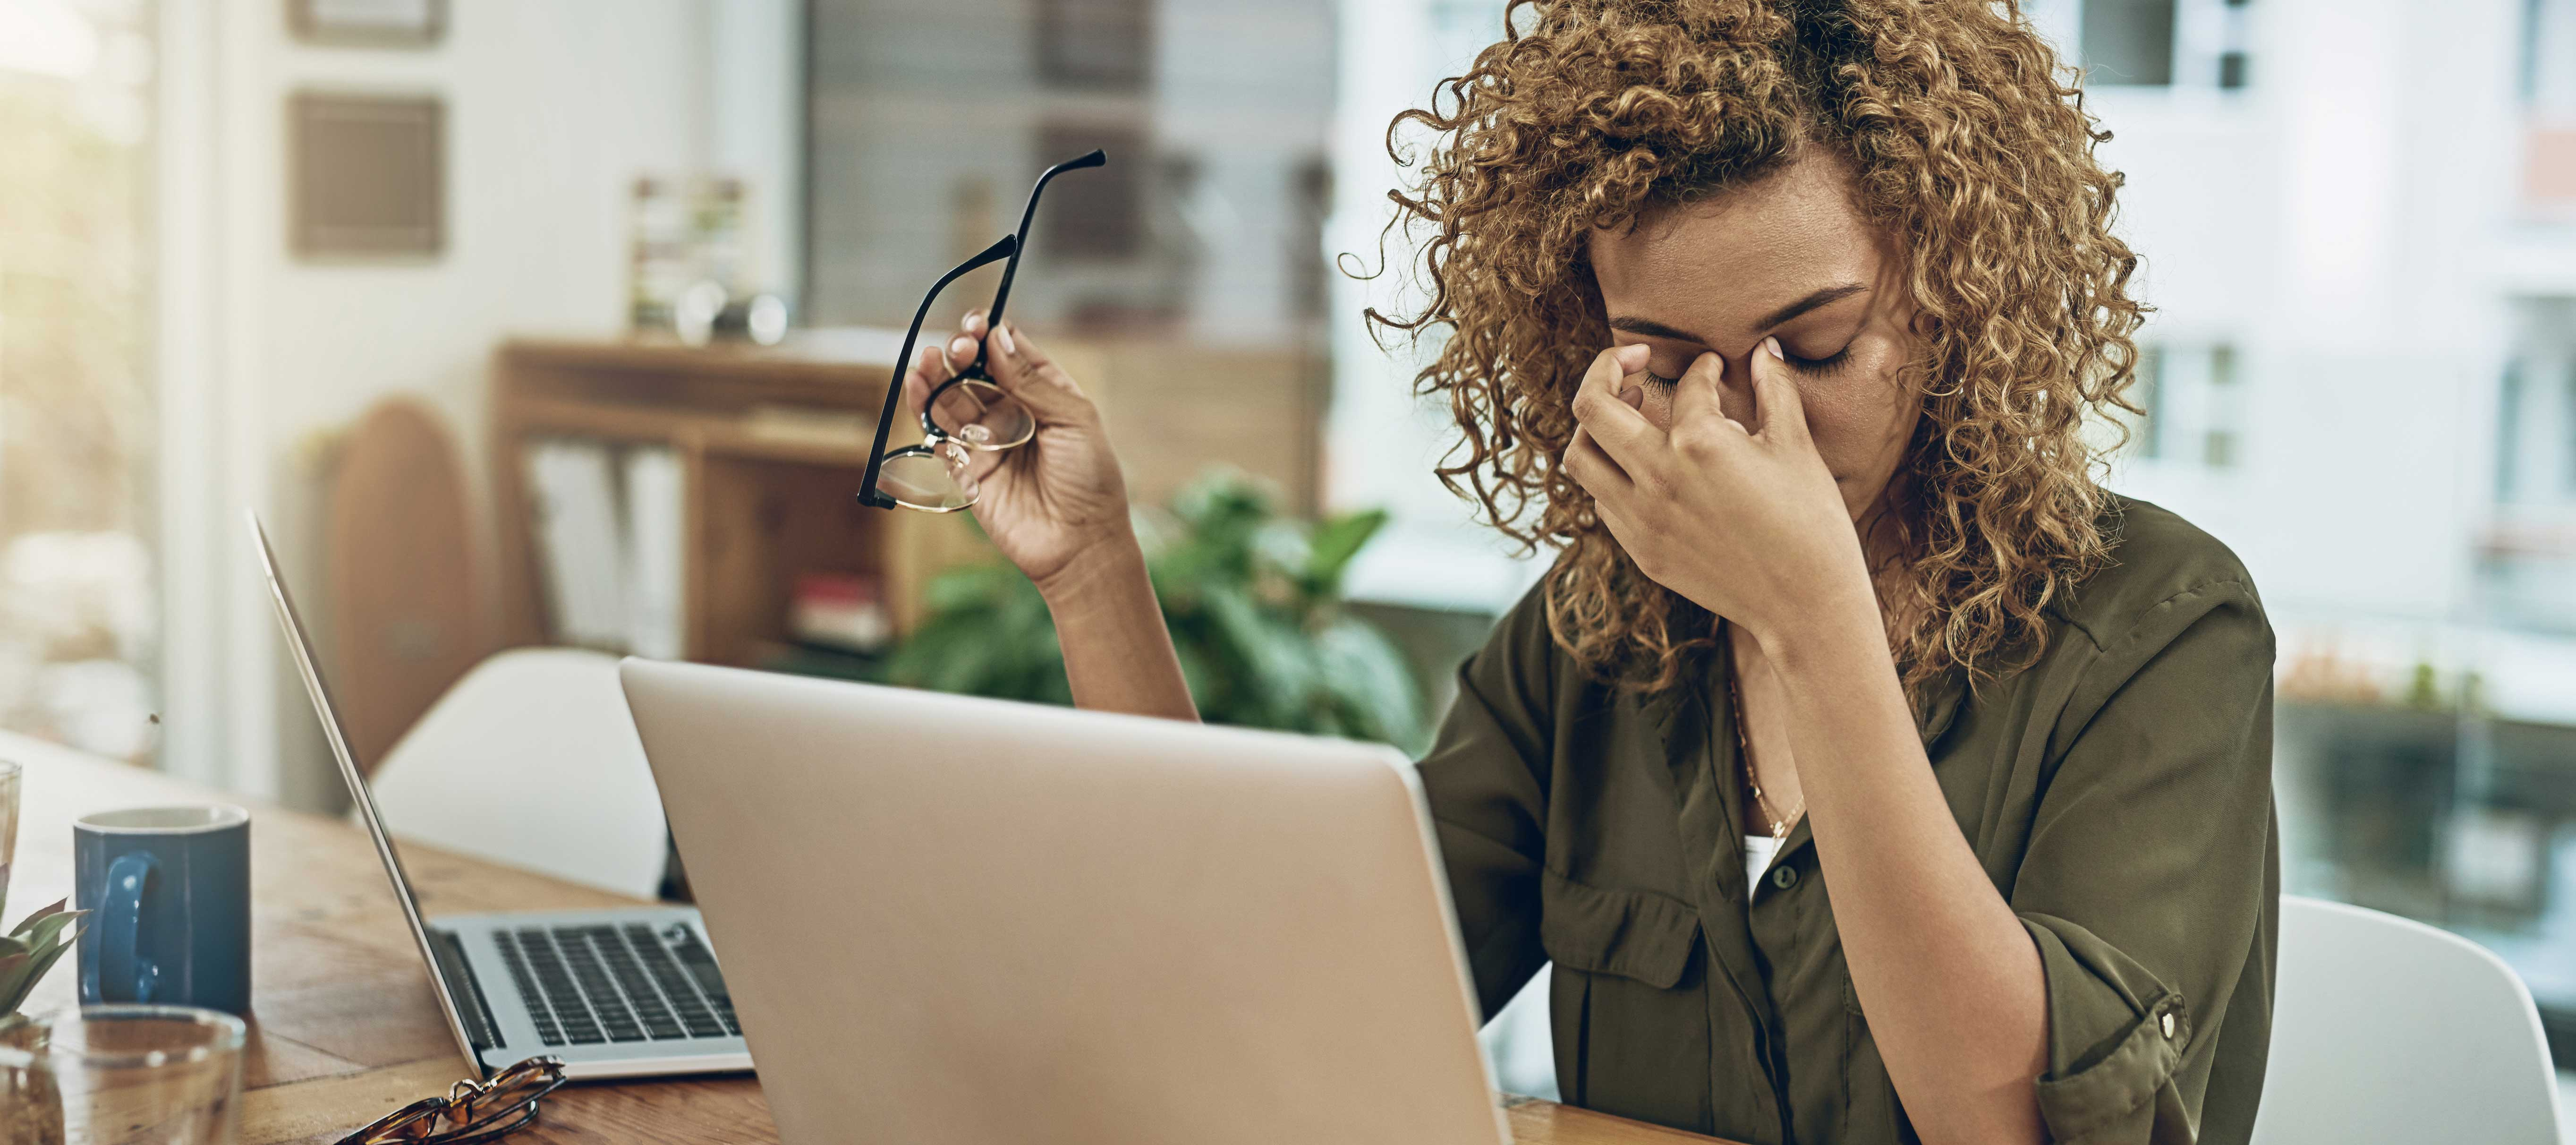 Heroic-Fundraising-Featured-Image-Stressed-Woman